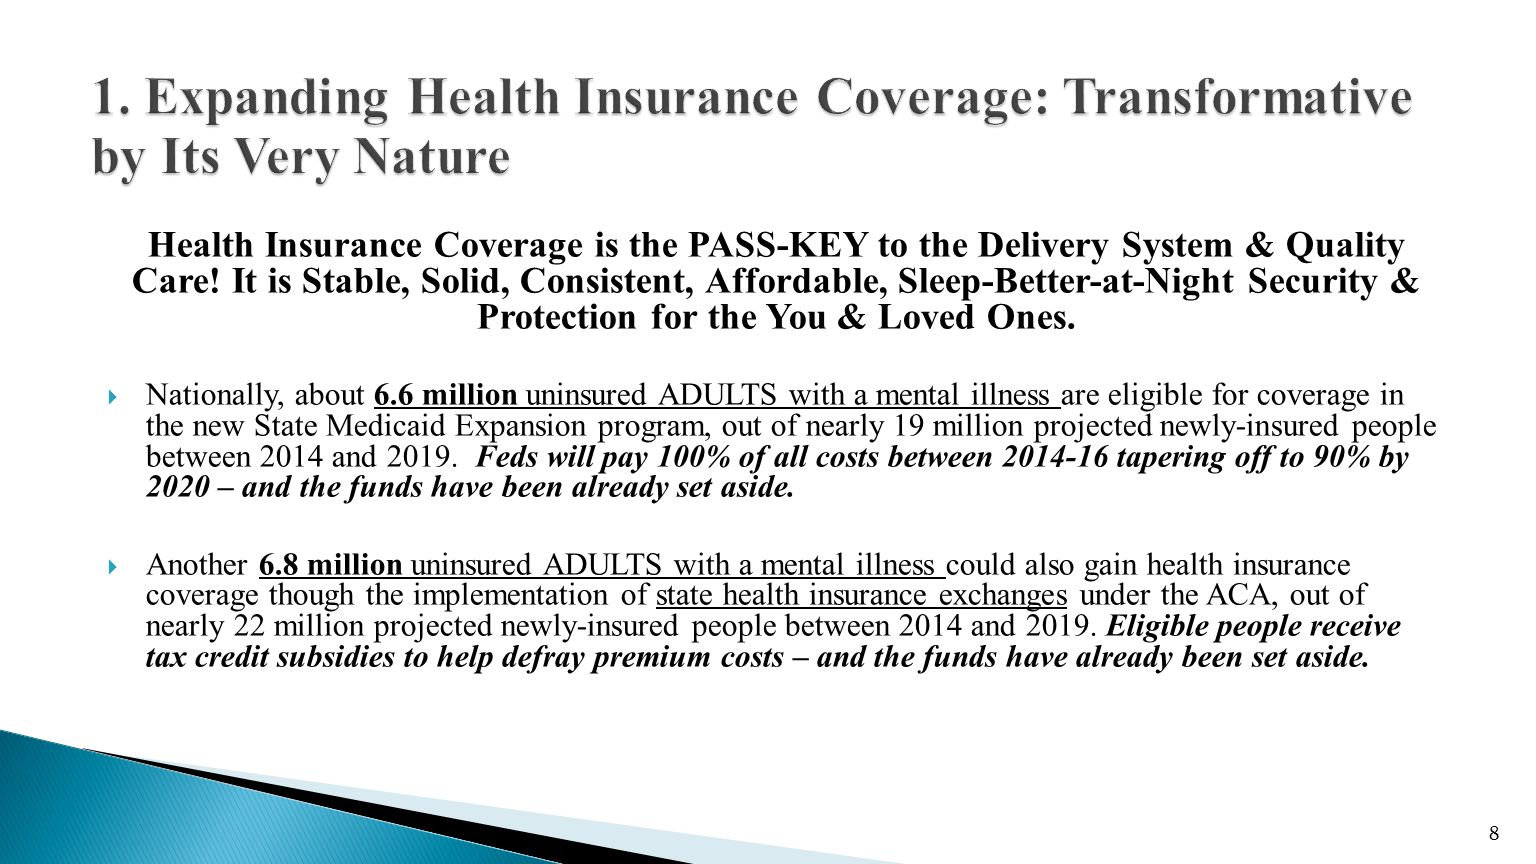 Health Insurance Coverage is the PASS-KEY to the Delivery System & Quality Care.